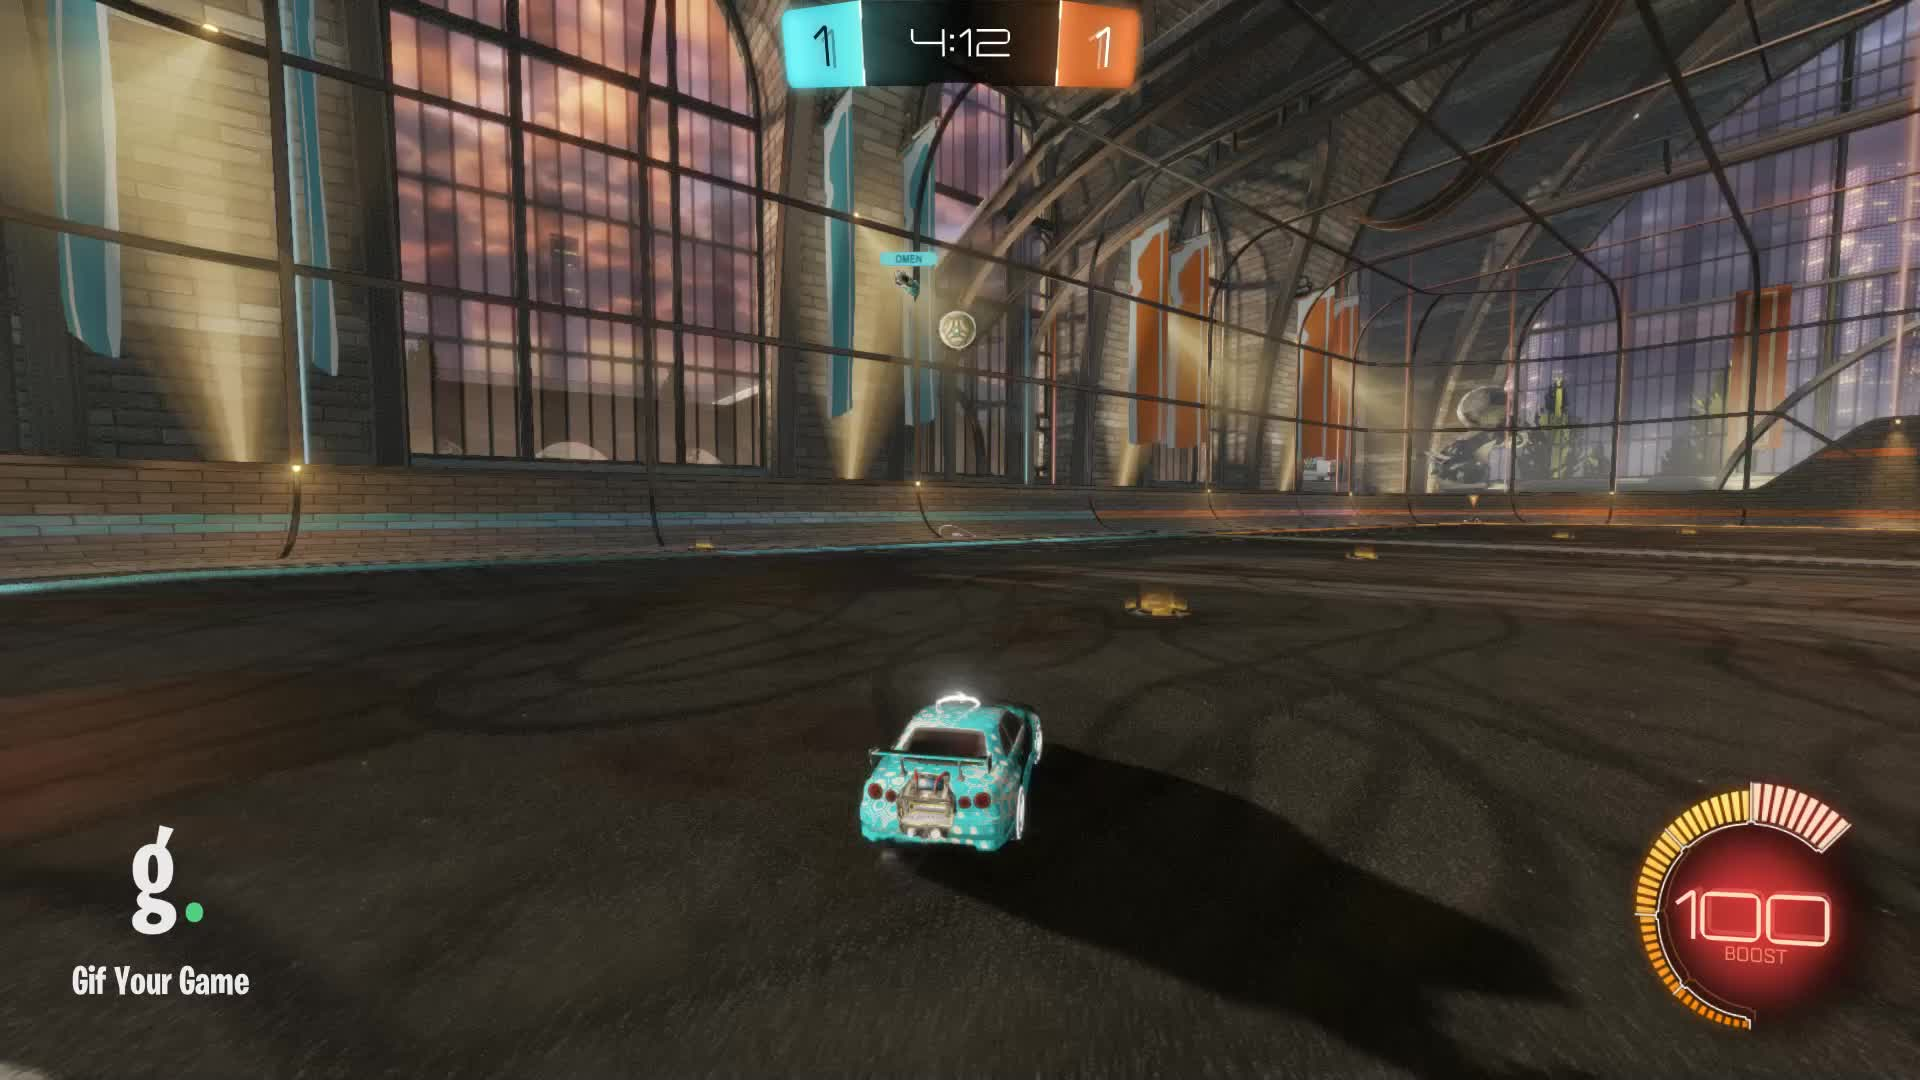 Gif Your Game, GifYourGame, Goal, Rocket League, RocketLeague, Squanshy Moofin, Goal 3: Squanshy Moofin GIFs